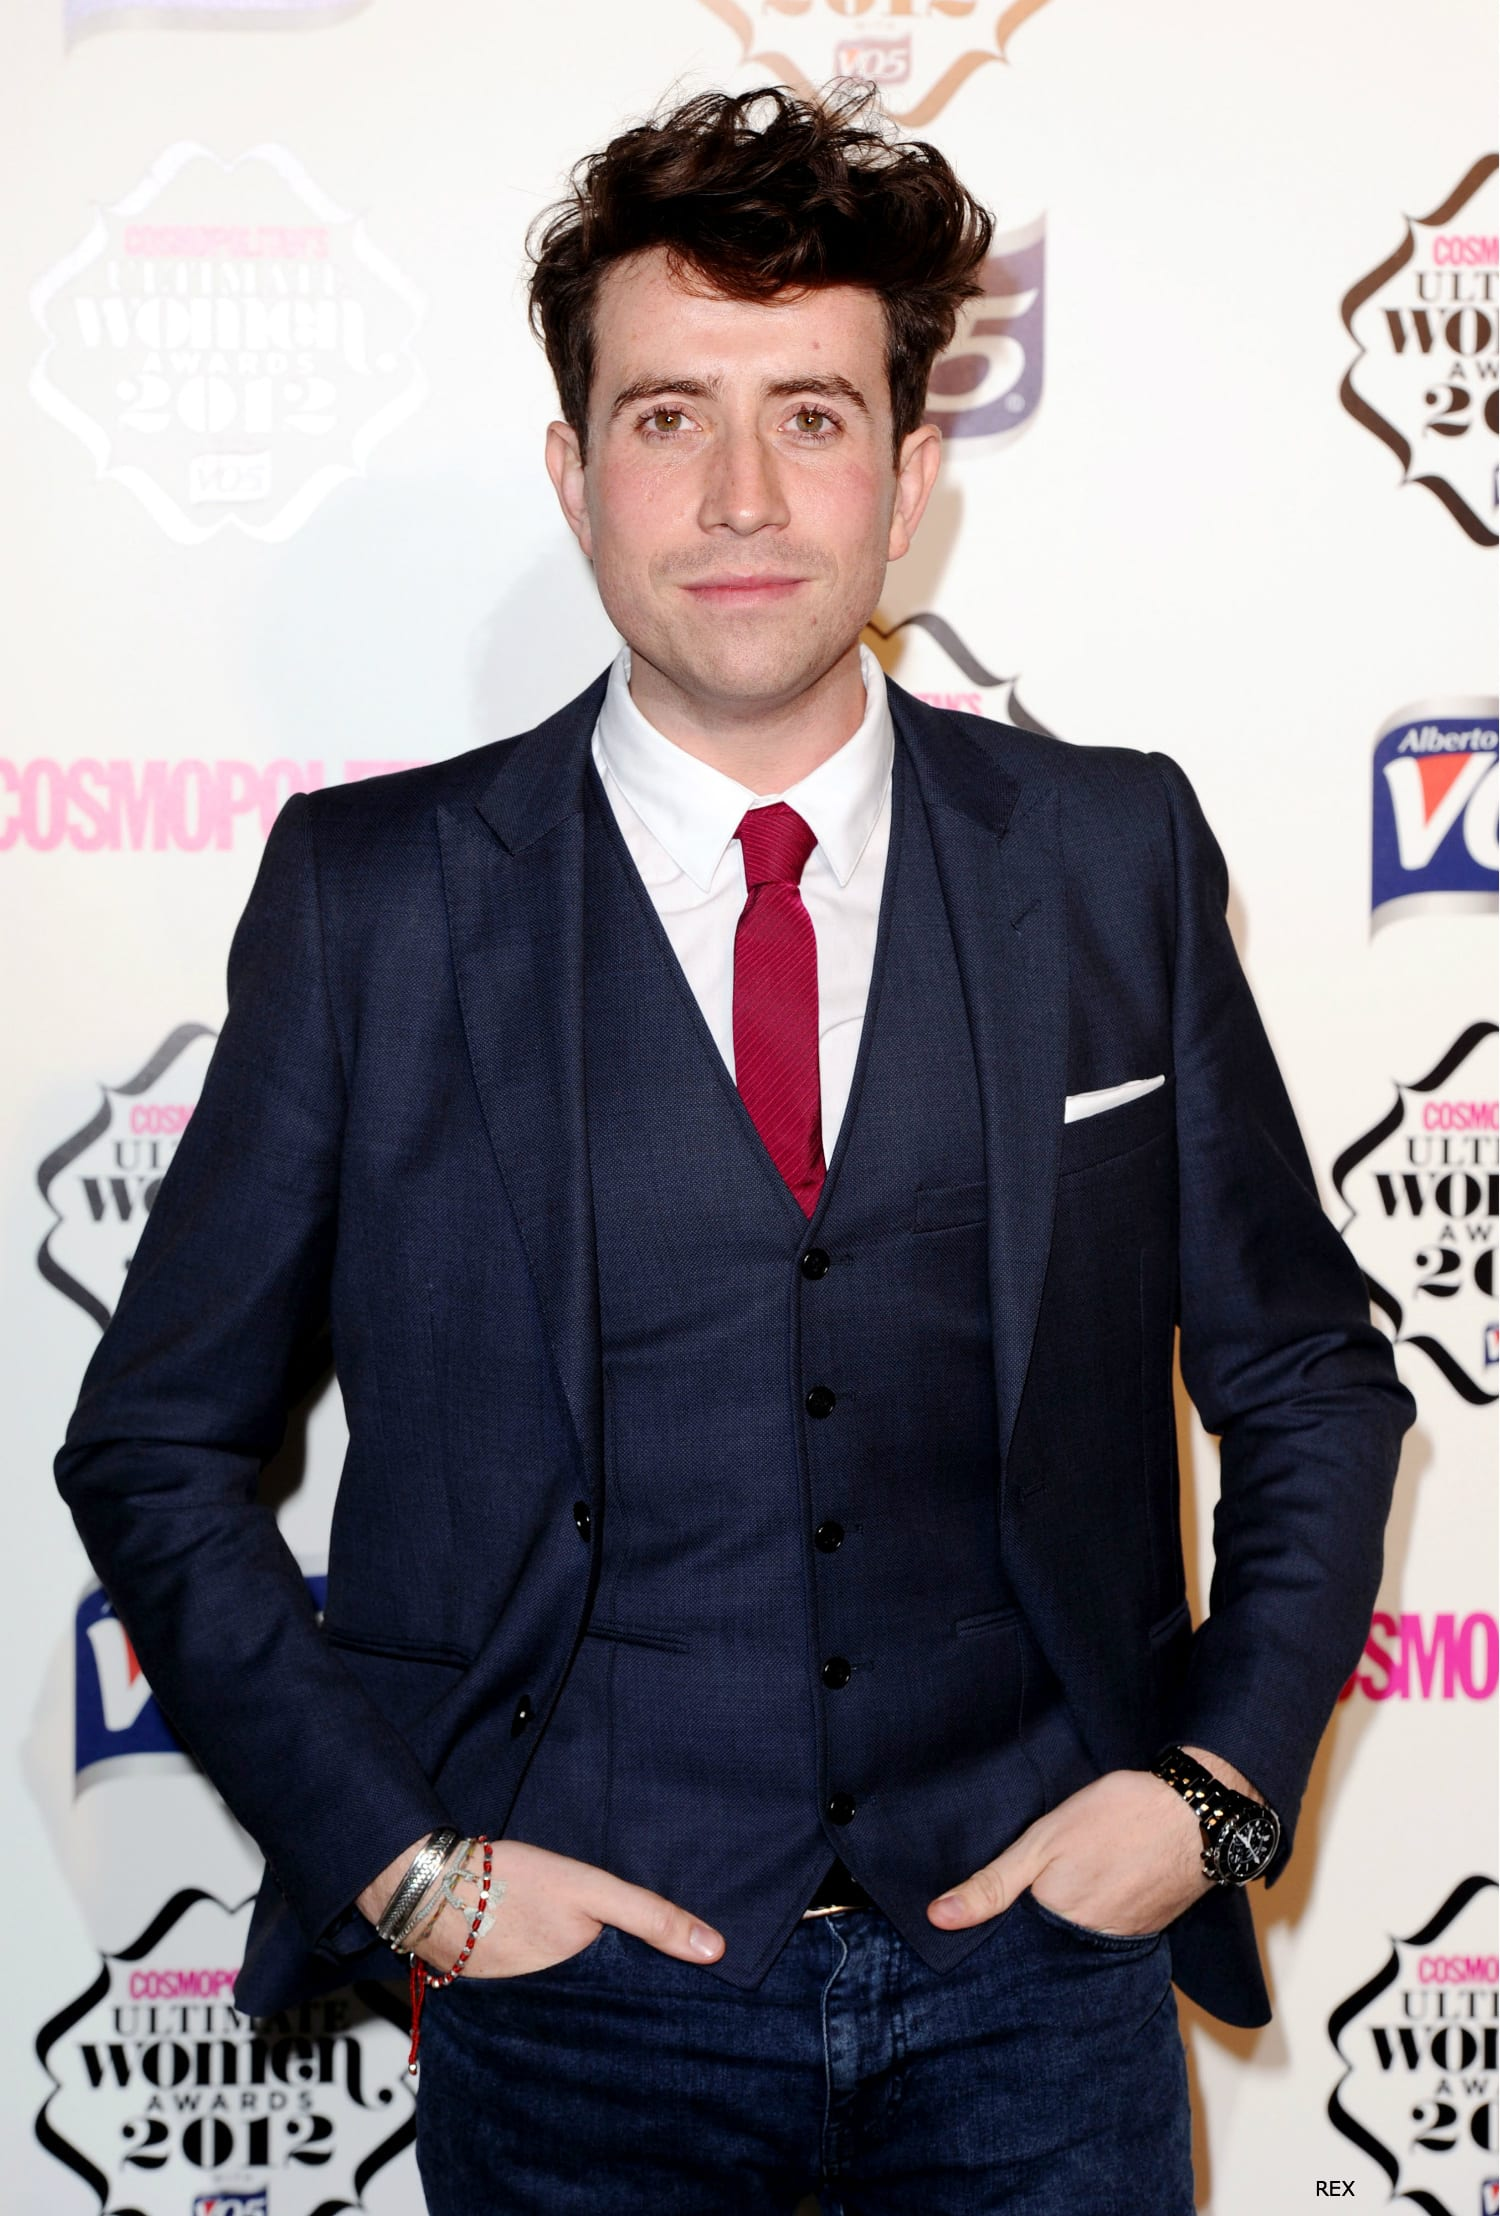 Nick Grimshaw Rocks The Wild One Quiff On Cosmo Red Carpet